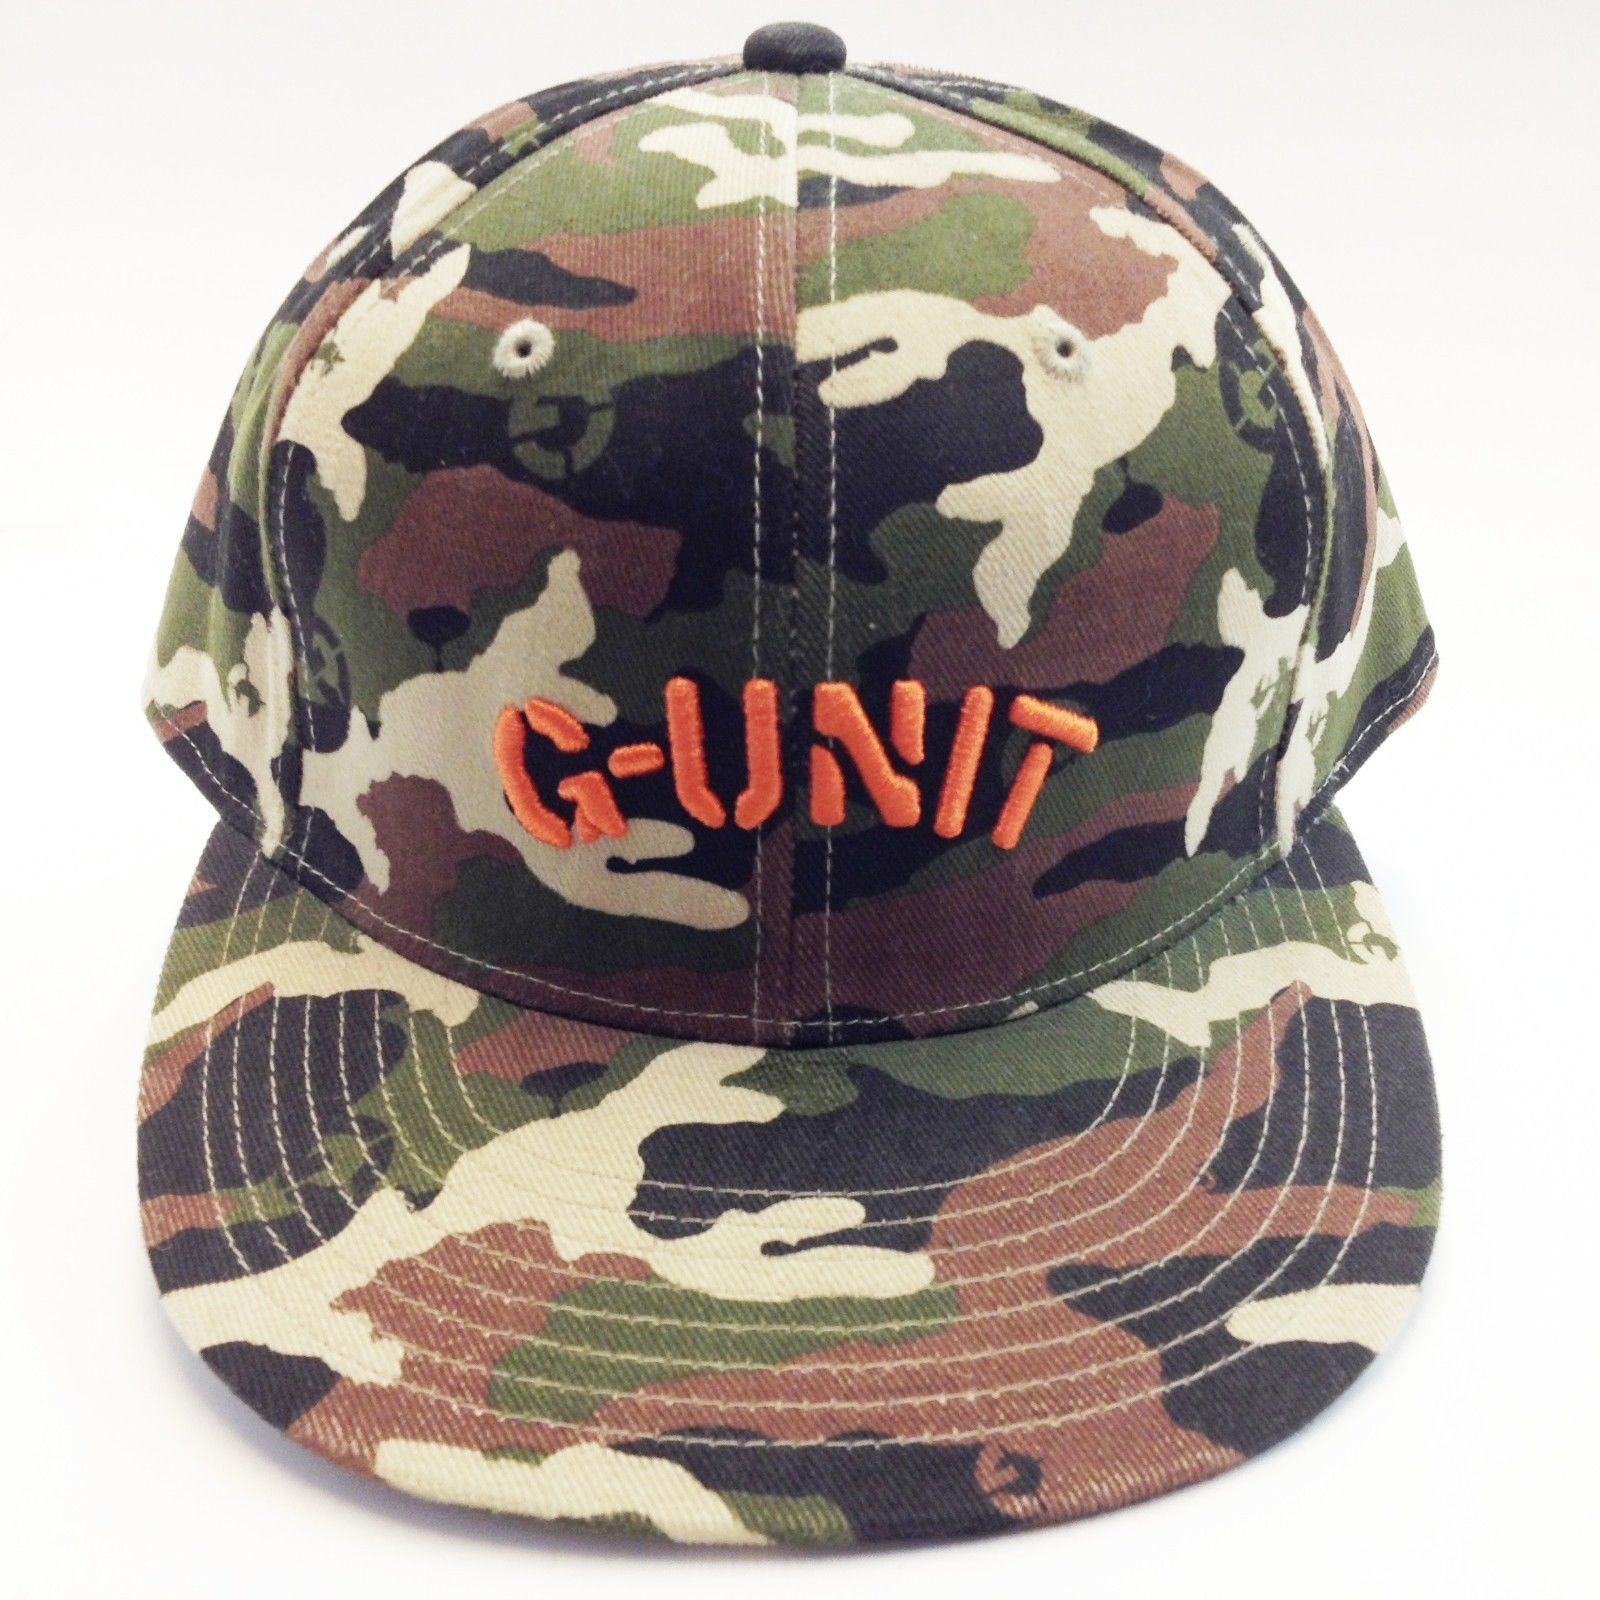 Primary image for G UNIT MEN'S BASEBALL CAP, THE PARA TROOP HAT, EKU62190 CAMO